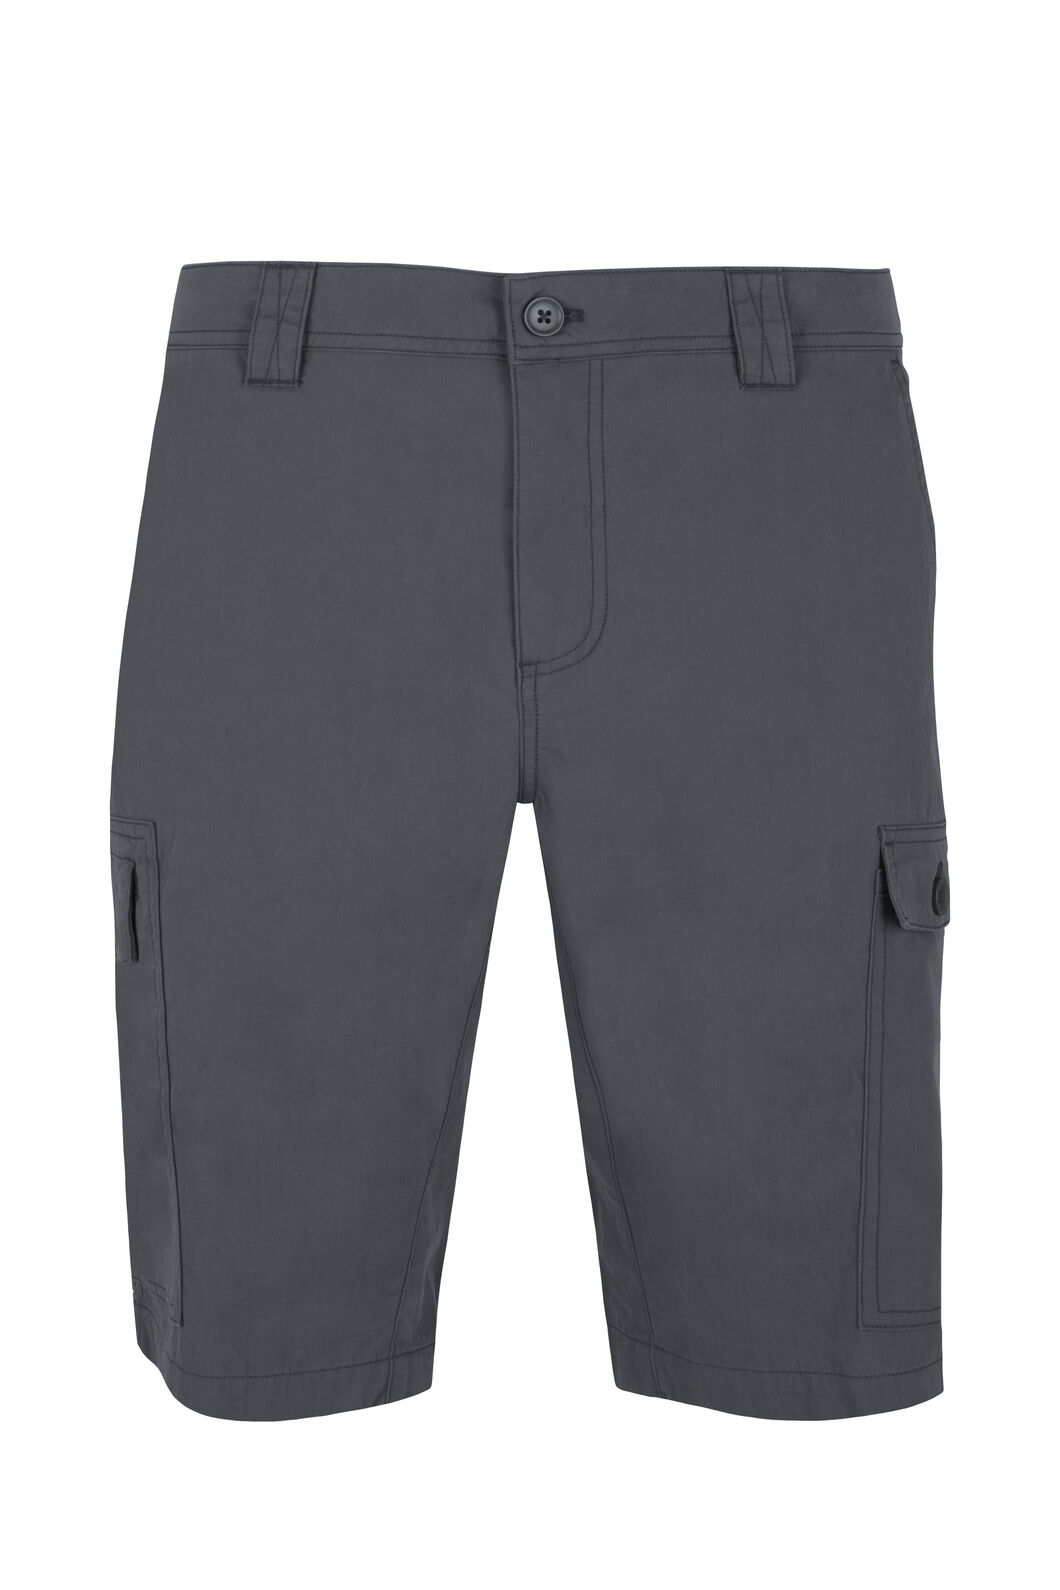 Macpac Matrix Shorts - Men's, Iron Gate, hi-res